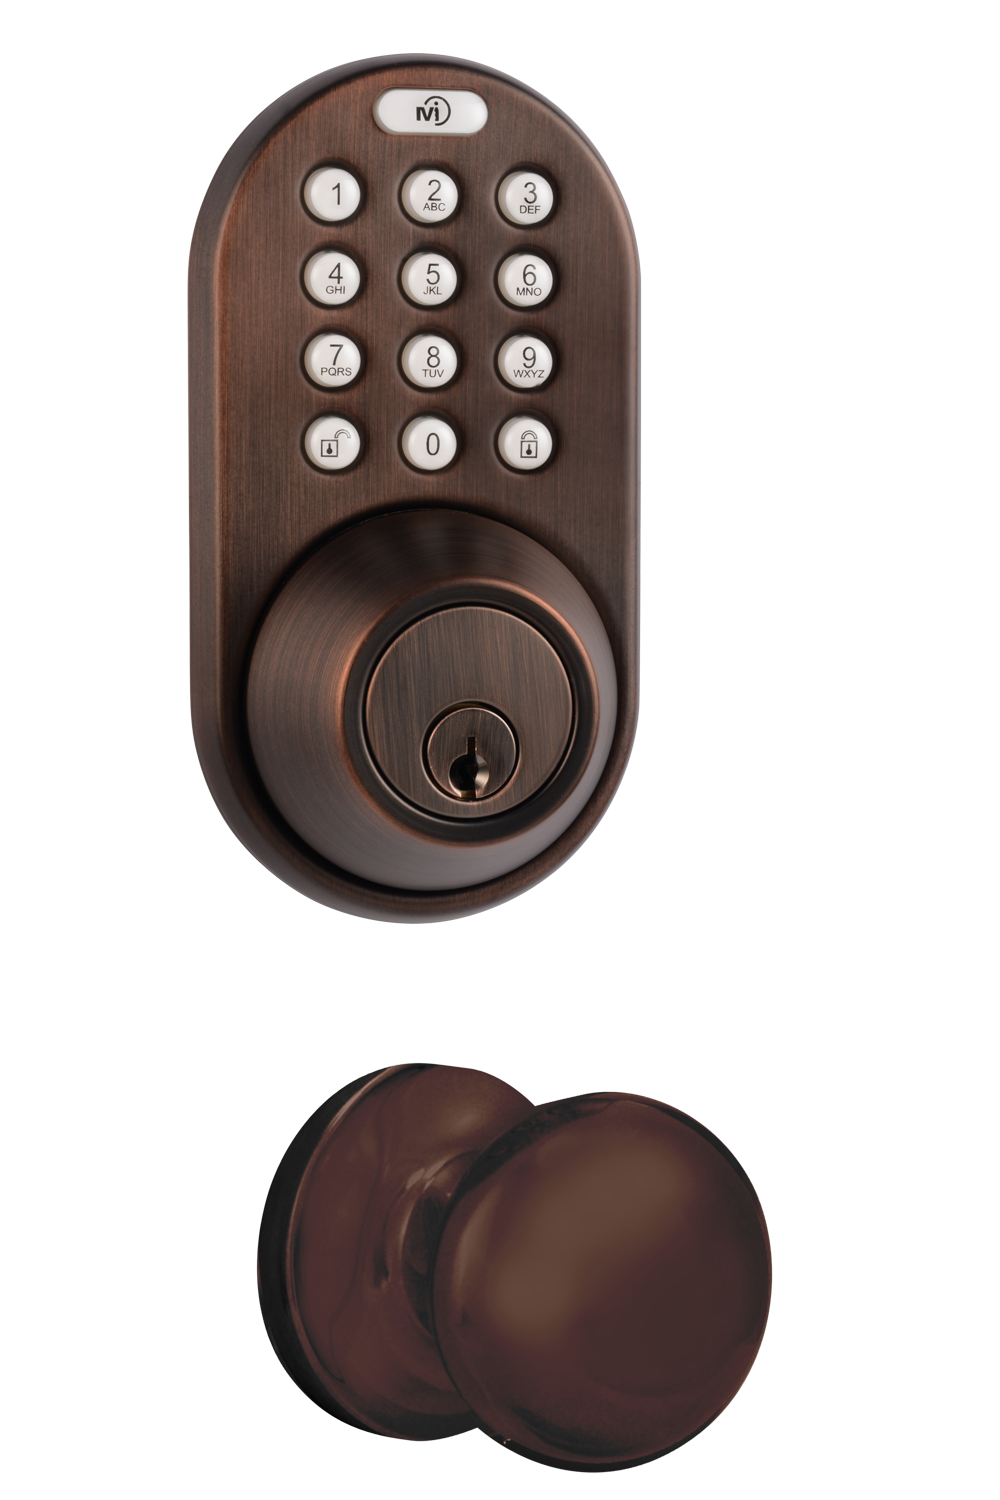 Keyless Entry Deadbolt and Knob Door Lock Combo Pack with RF Remote Control and Electronic Digital Keypad